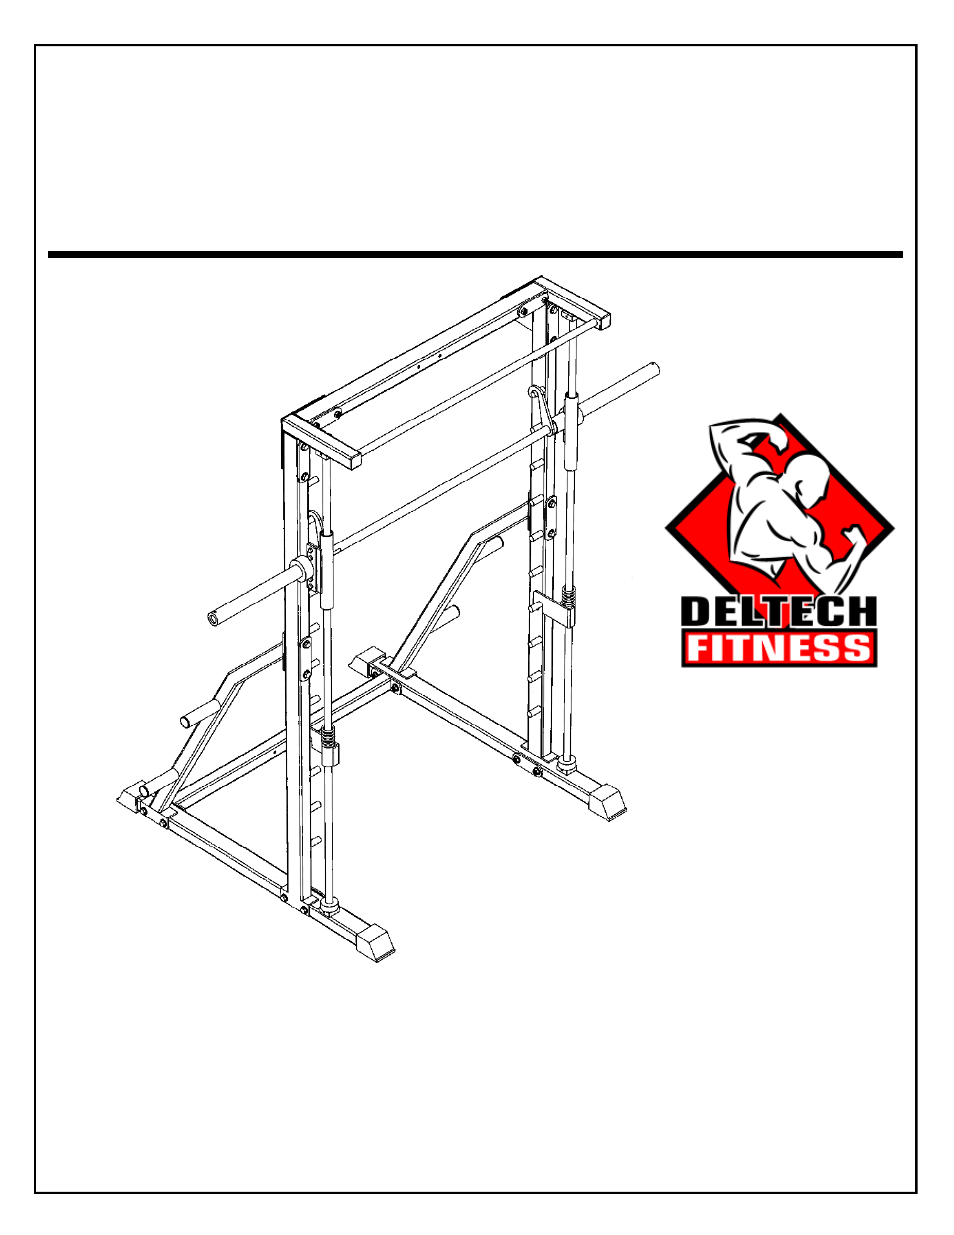 Deltech Fitness DF4900- Linear Bearing Smith Machine User